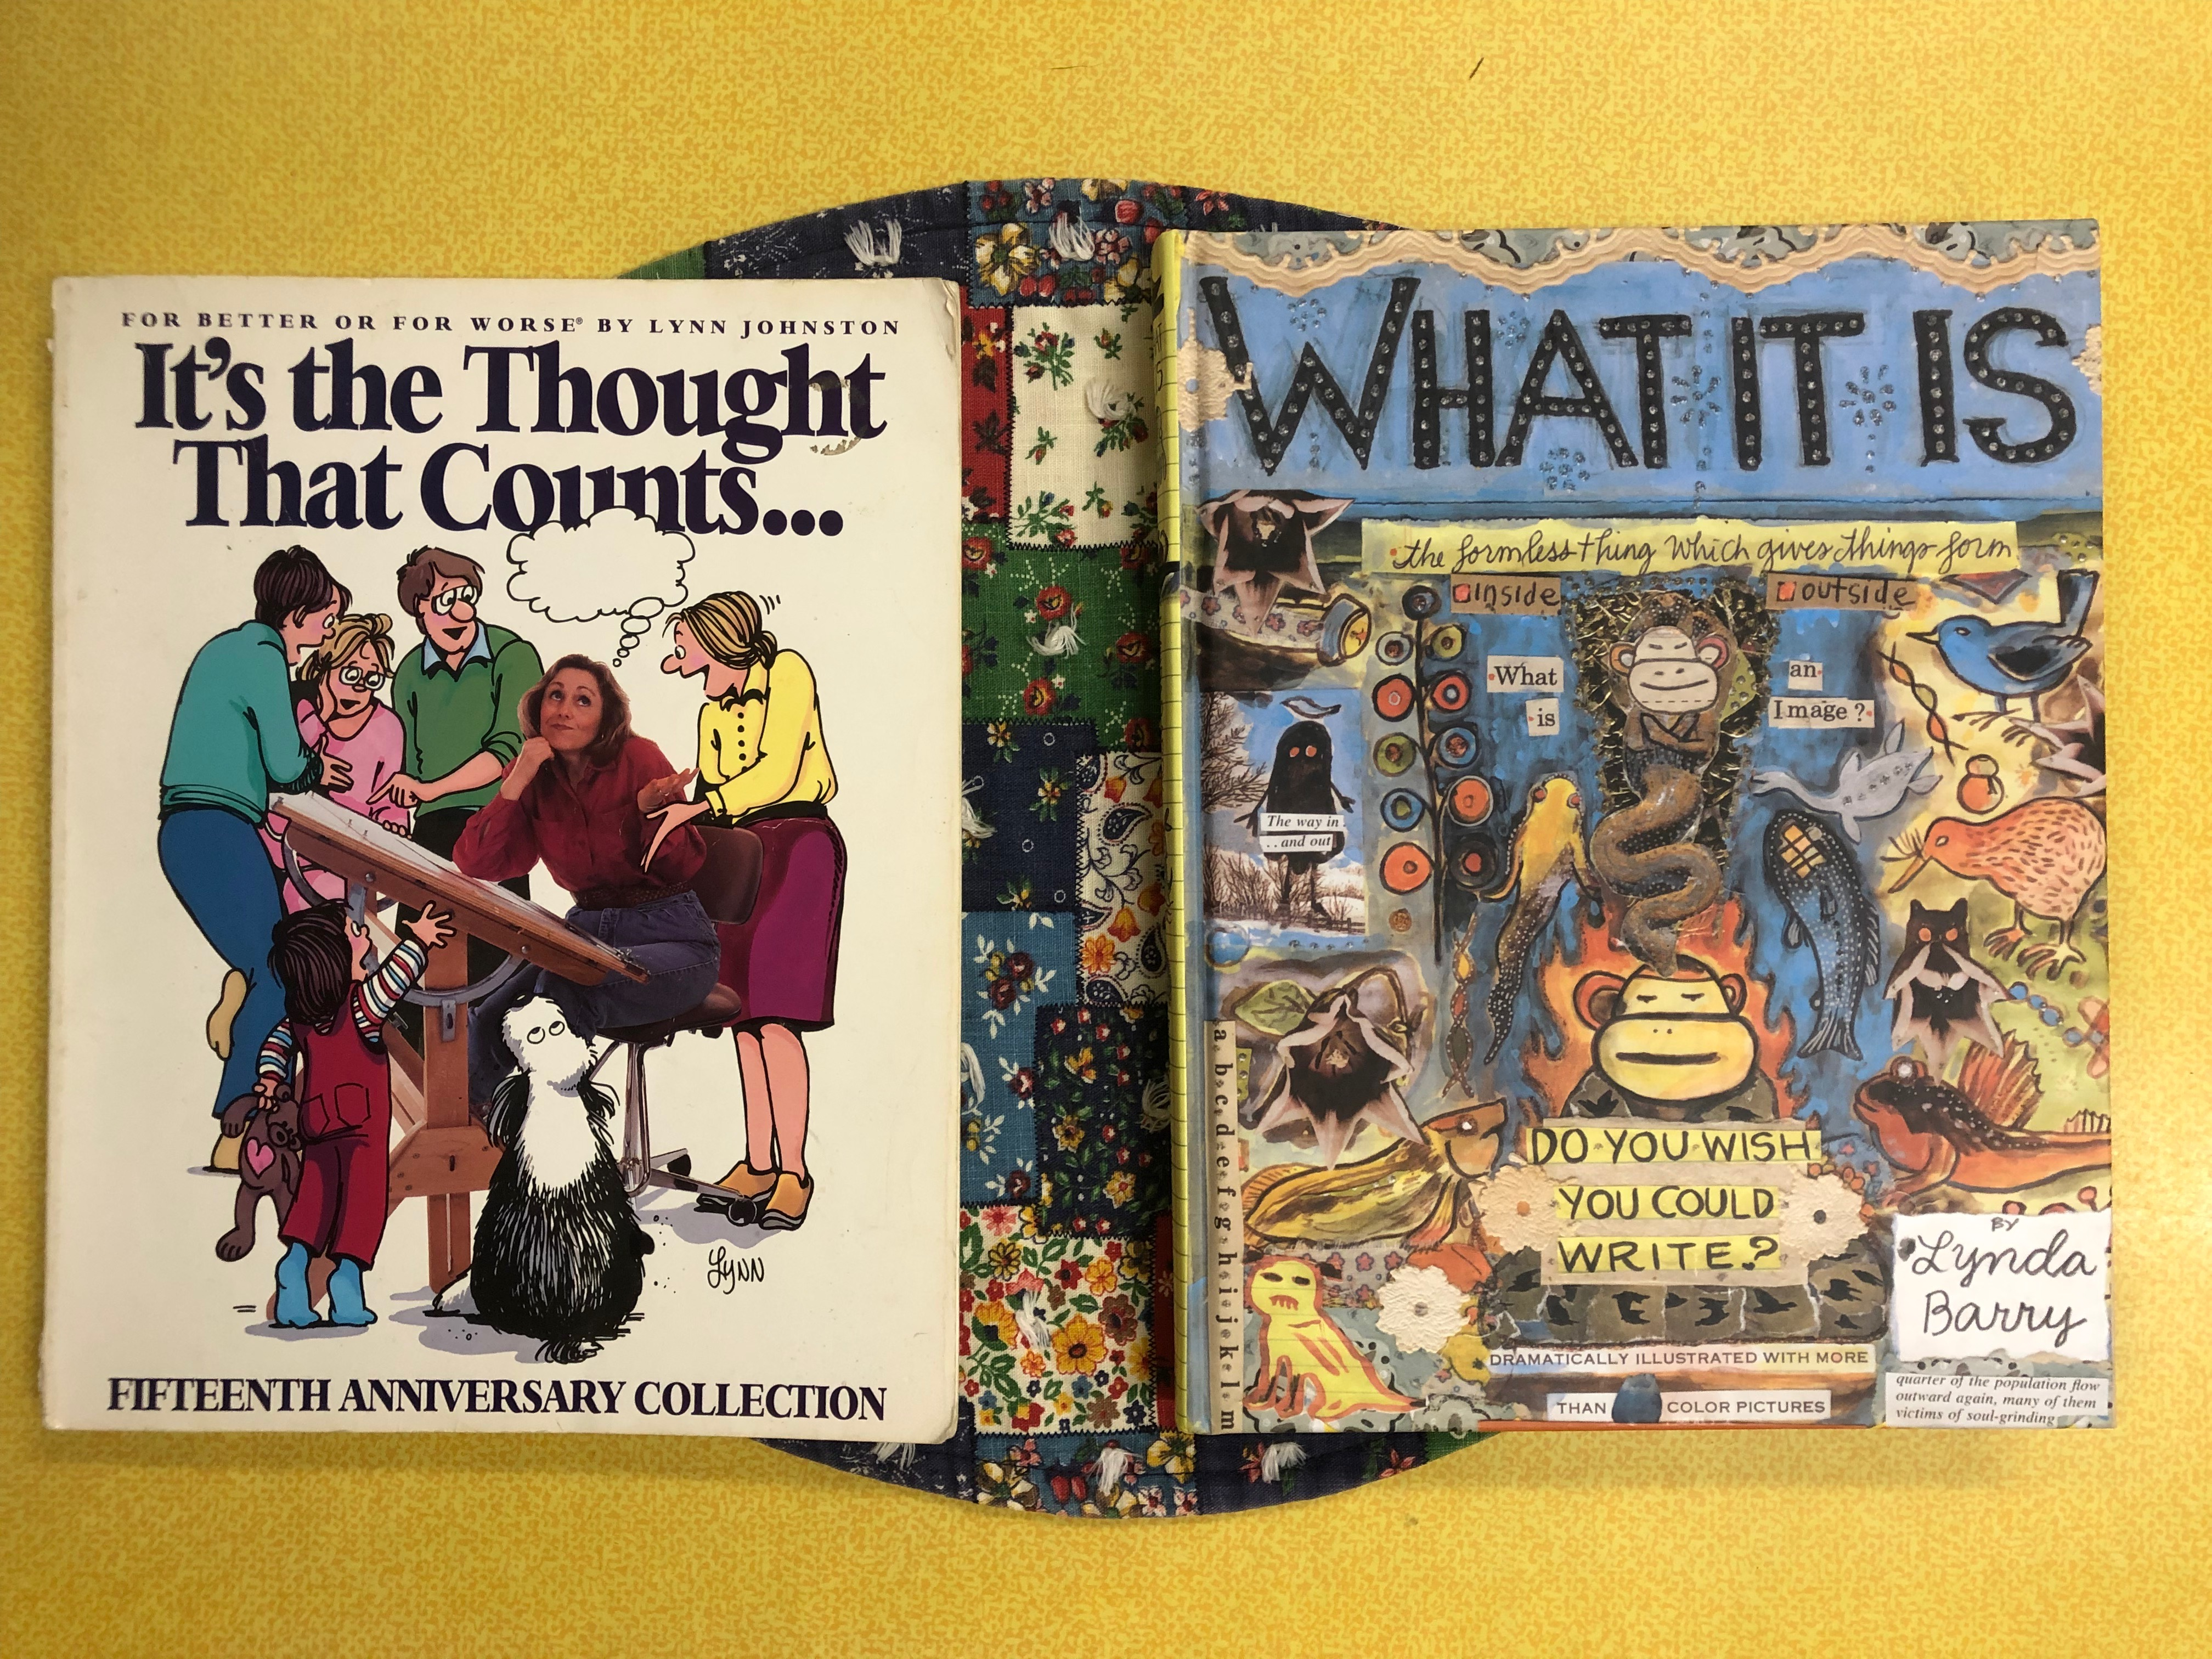 This photo is a birds-eye view of two books seated on top of a round, quilted place mat on a yellow, laminated kitchen table. The book on the left is Lynn Johnson's book It's the Thought That Counts, and the book on the right is Lynda Barry's what it is.